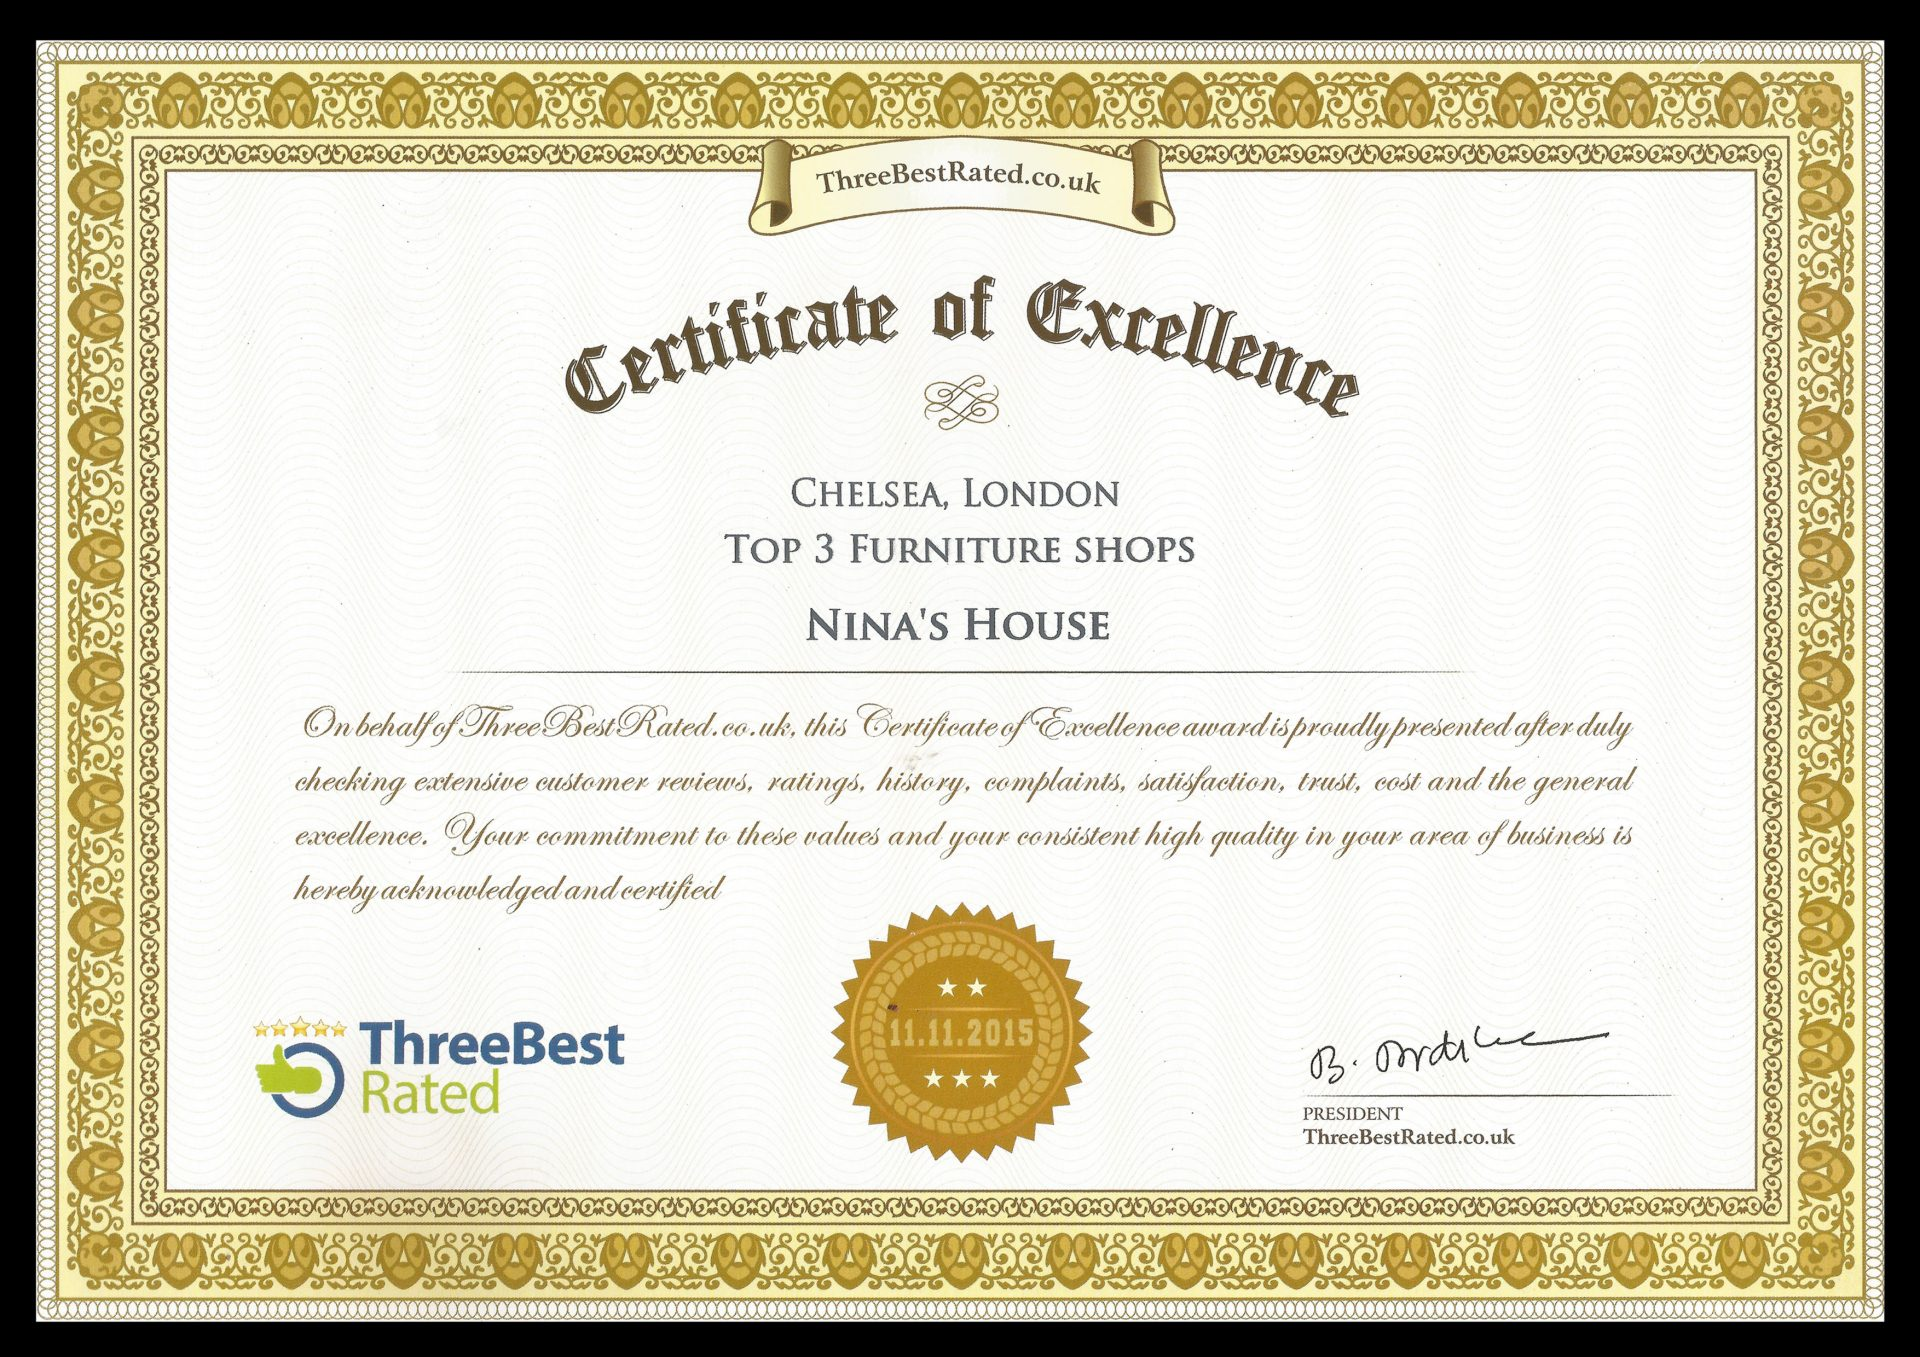 Three Best Rated Certificate 2015